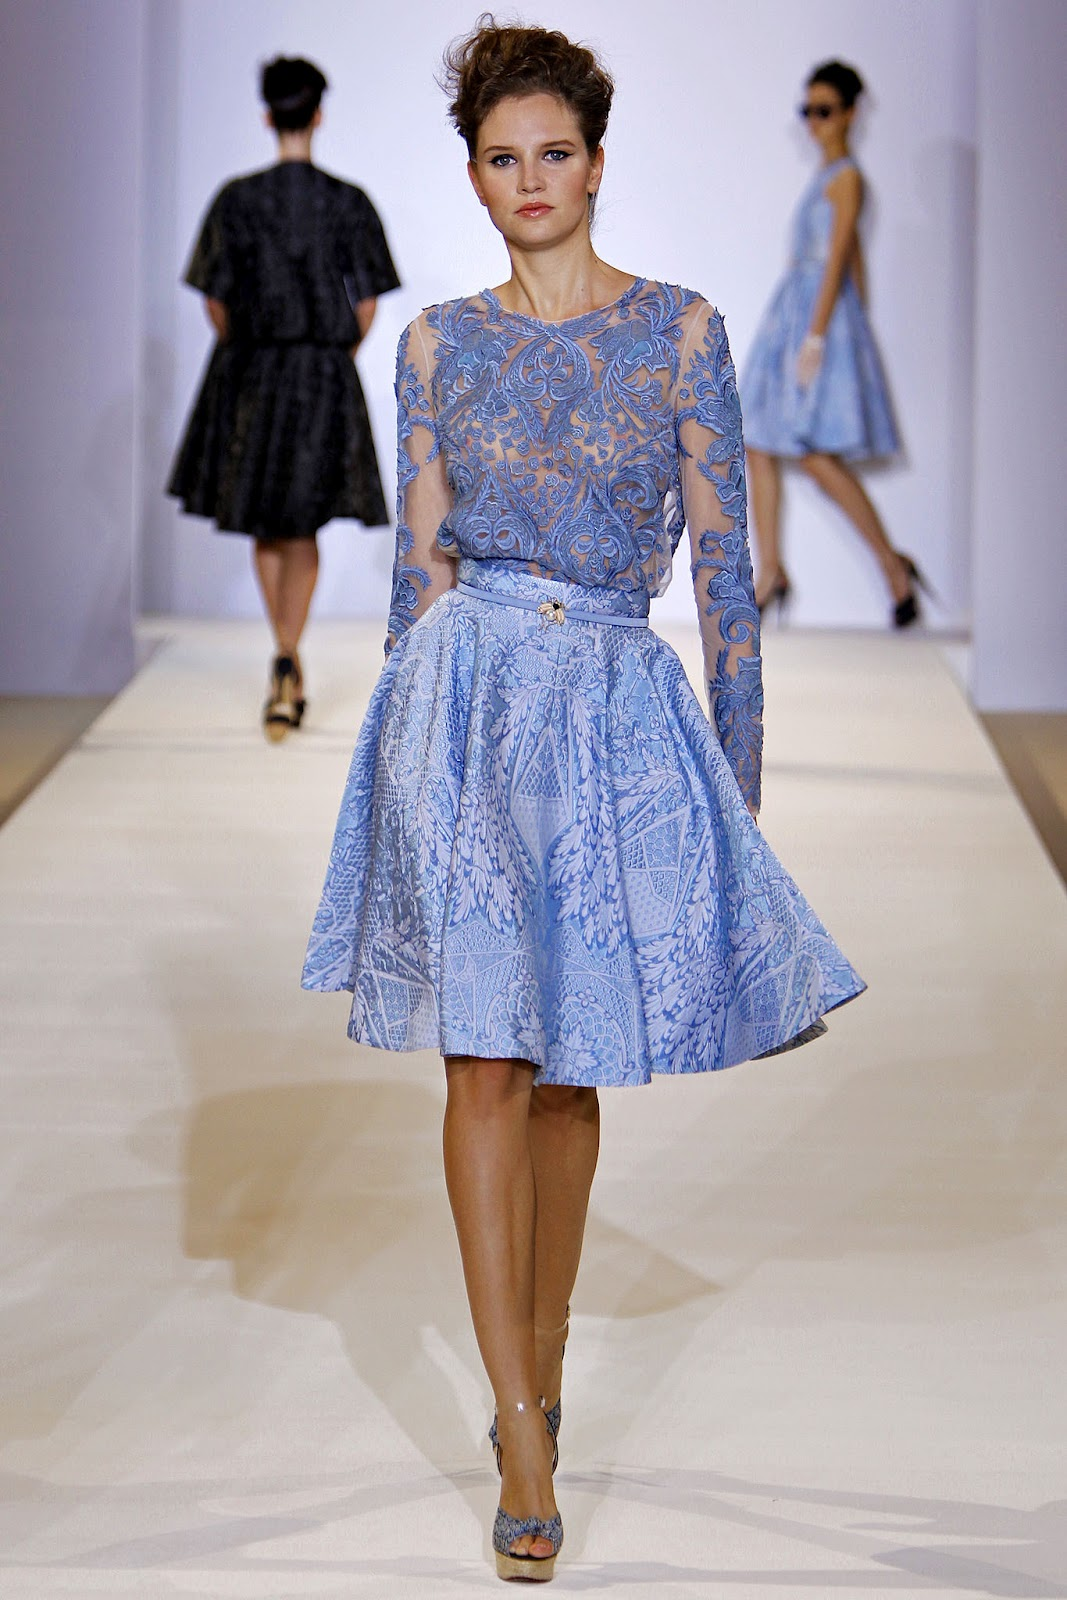 London Fashion Week Spring Summer 2013 : Temperley London